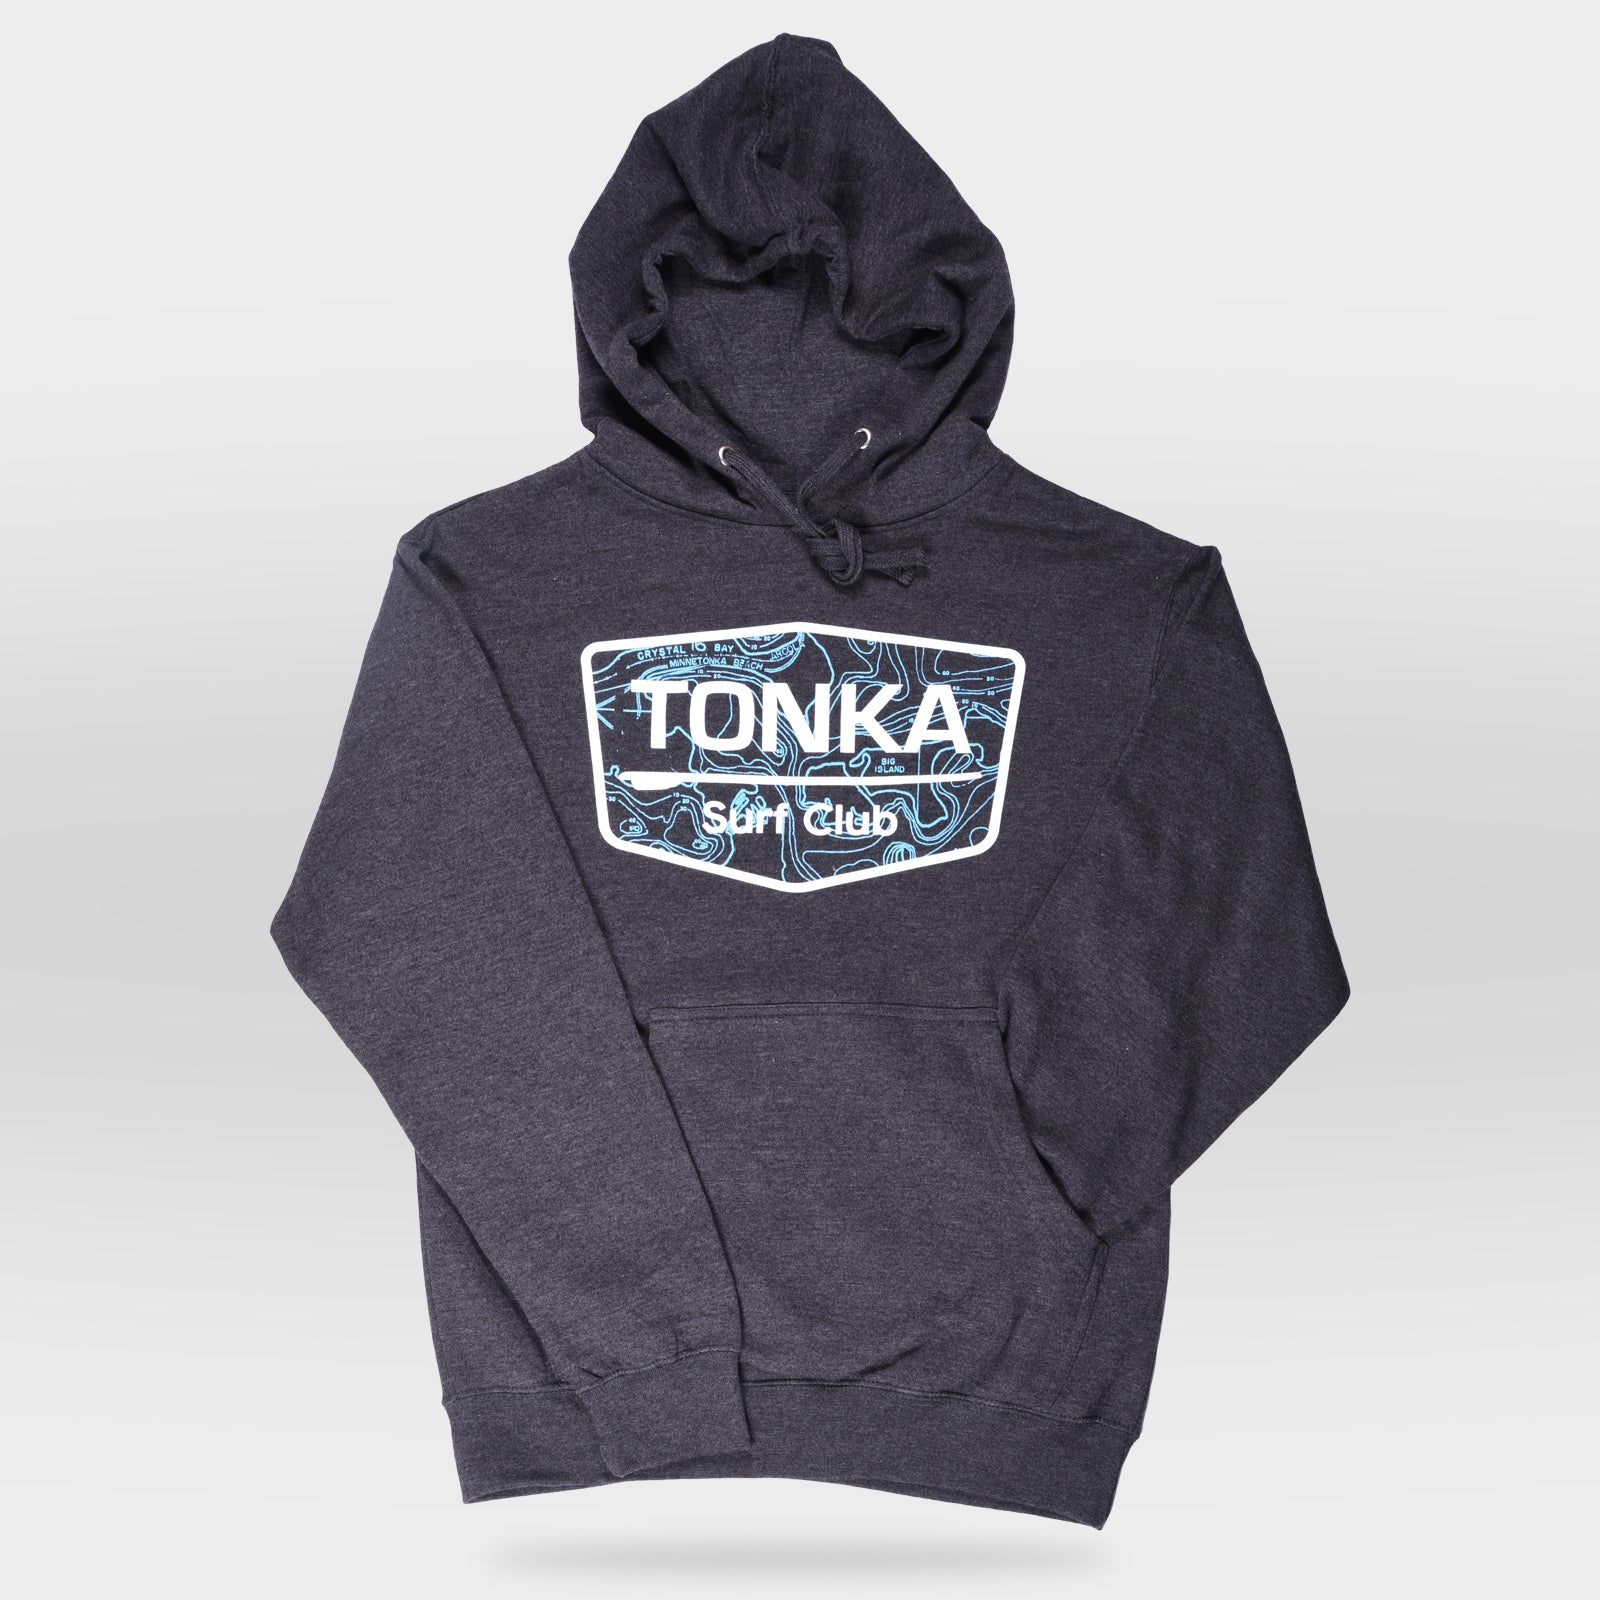 Charcoal Men's TONKA Surf Club Hoodie Sweatshirt